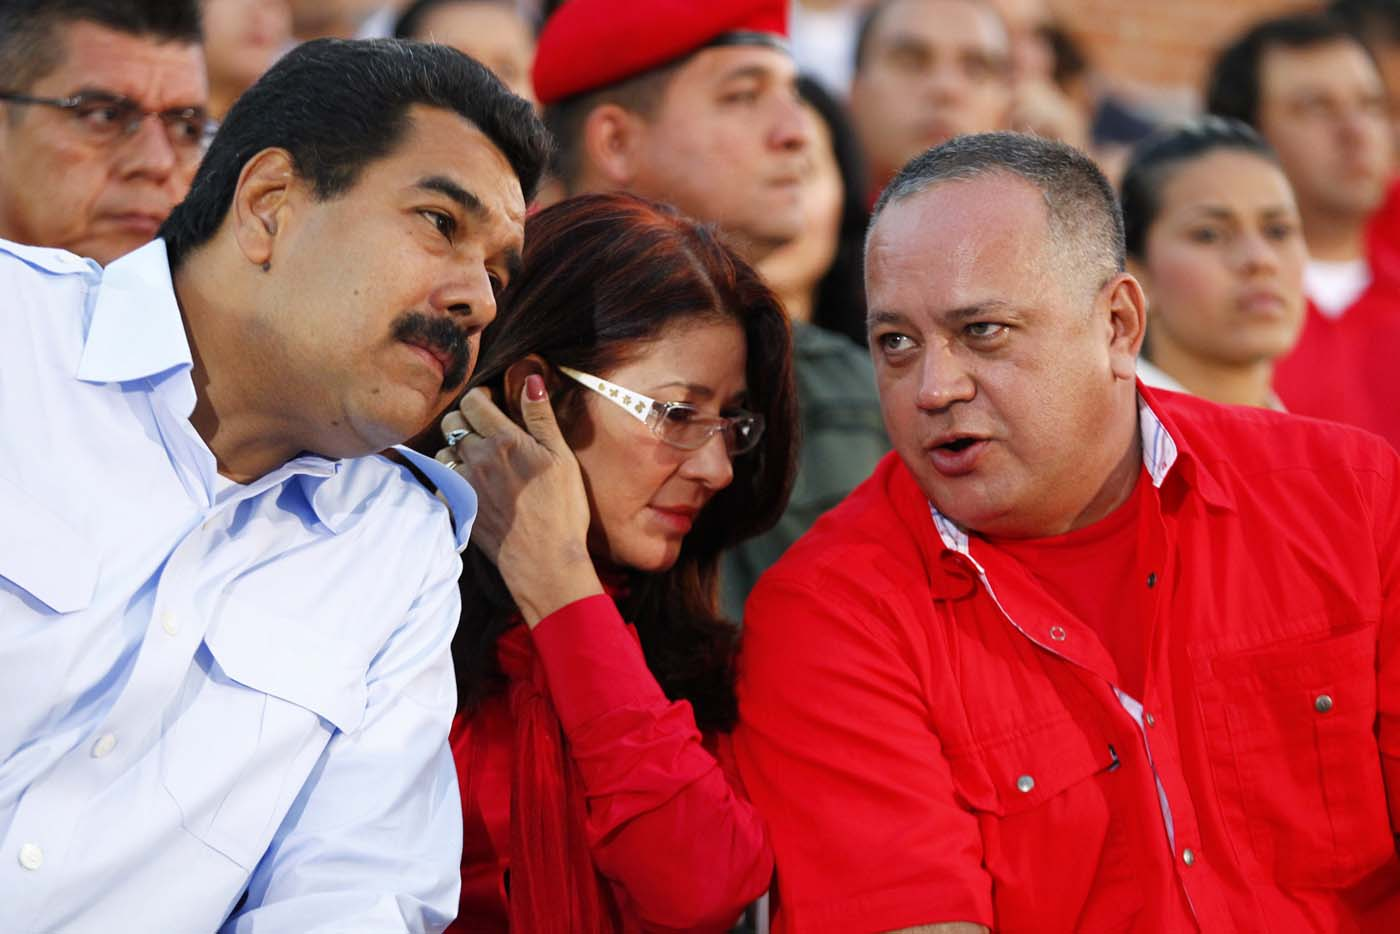 Venezuela's President Nicolas Maduro sits next to his wife Cilia Flores as he talks to National Assembly President Diosdado Cabello in Caracas